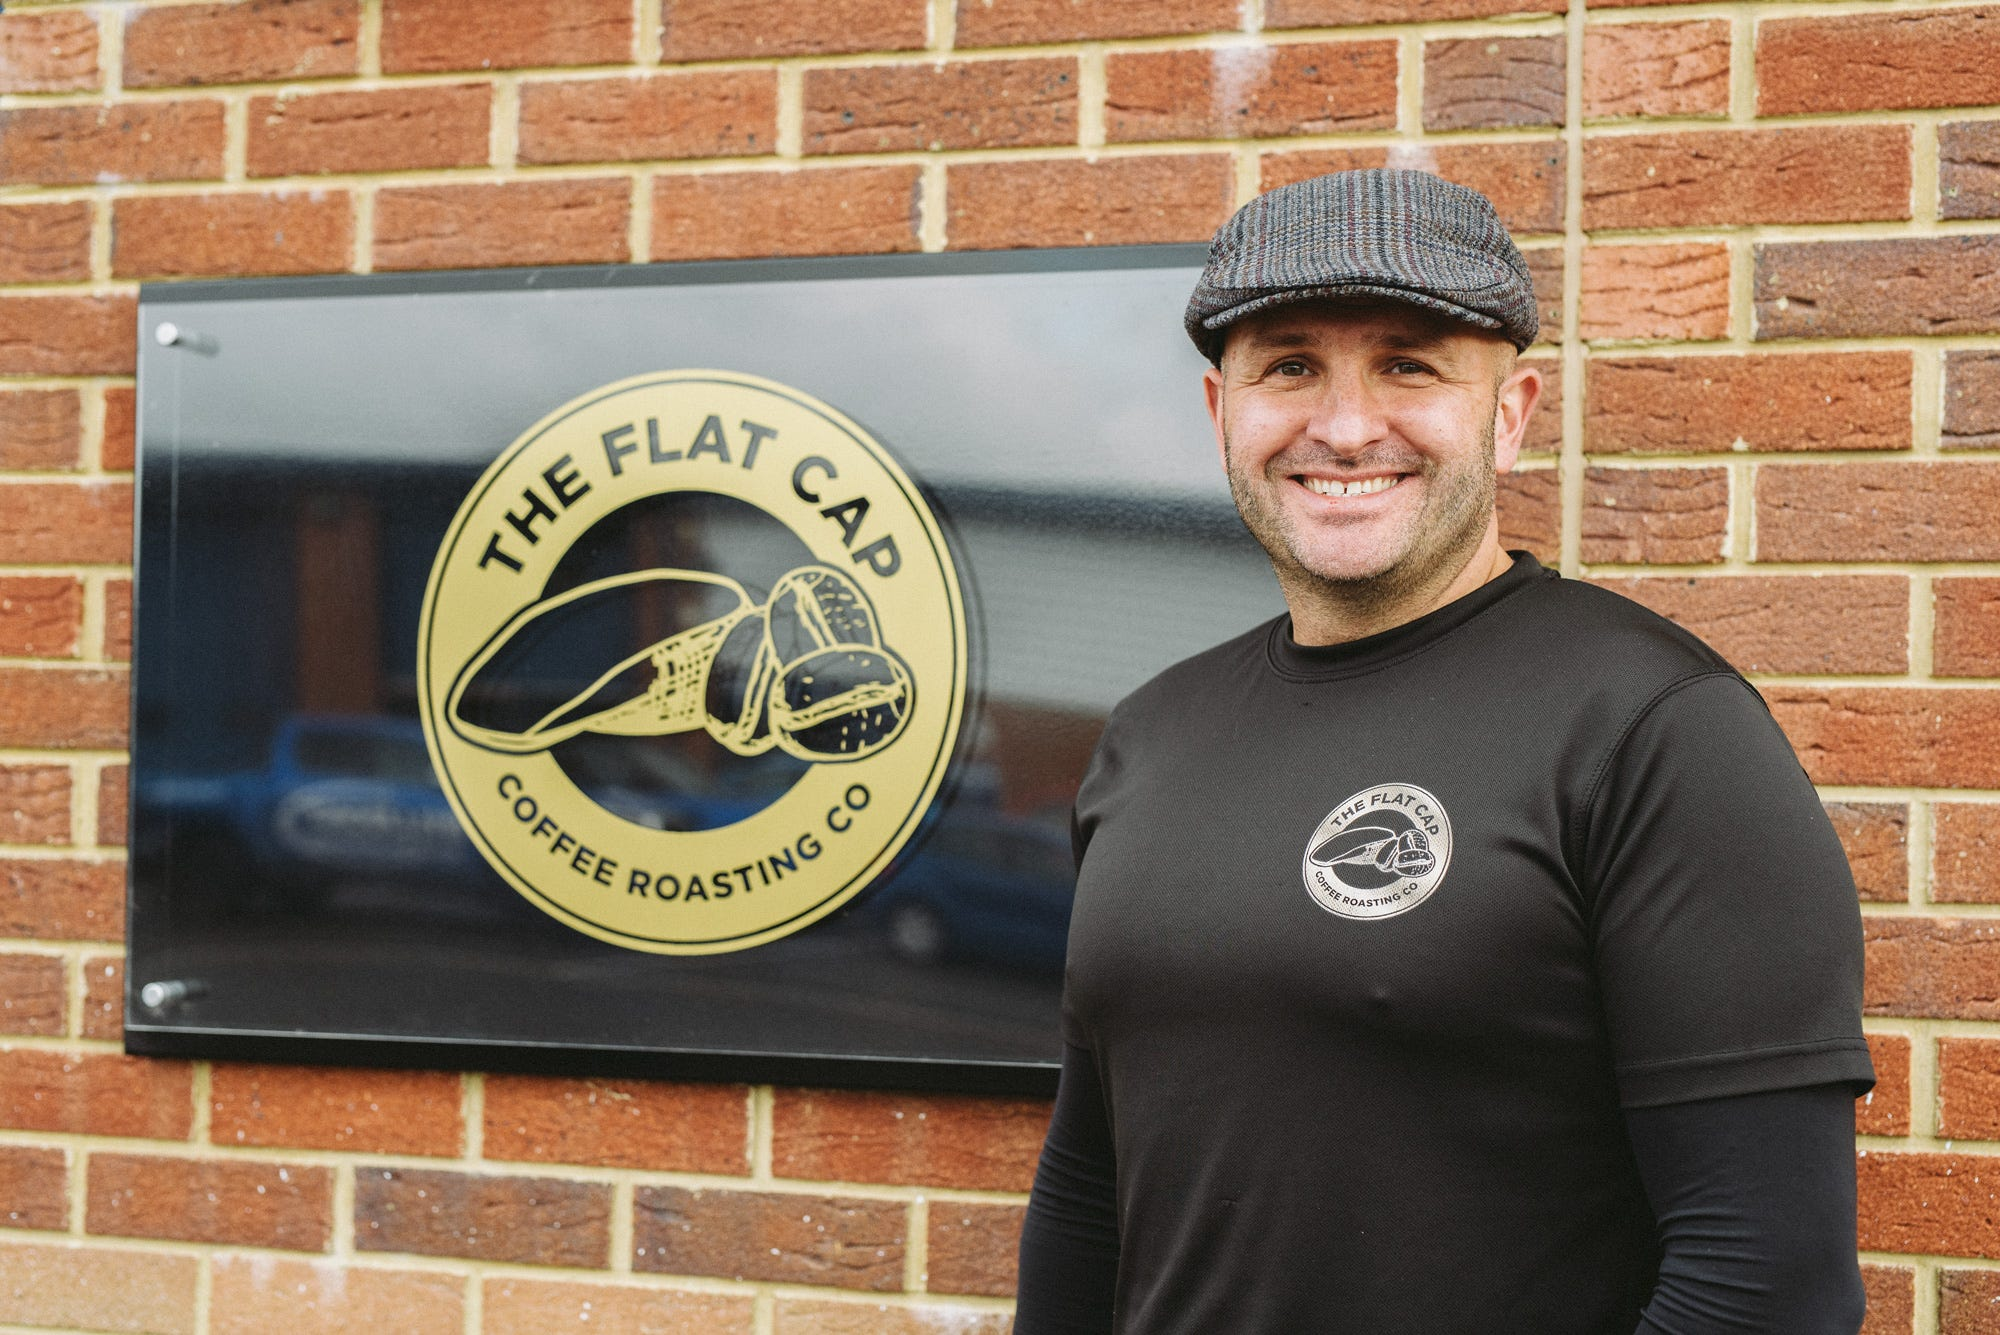 Mark Hepworth standing next to wall displaying Flat Cap Coffee Roasting Co. sign